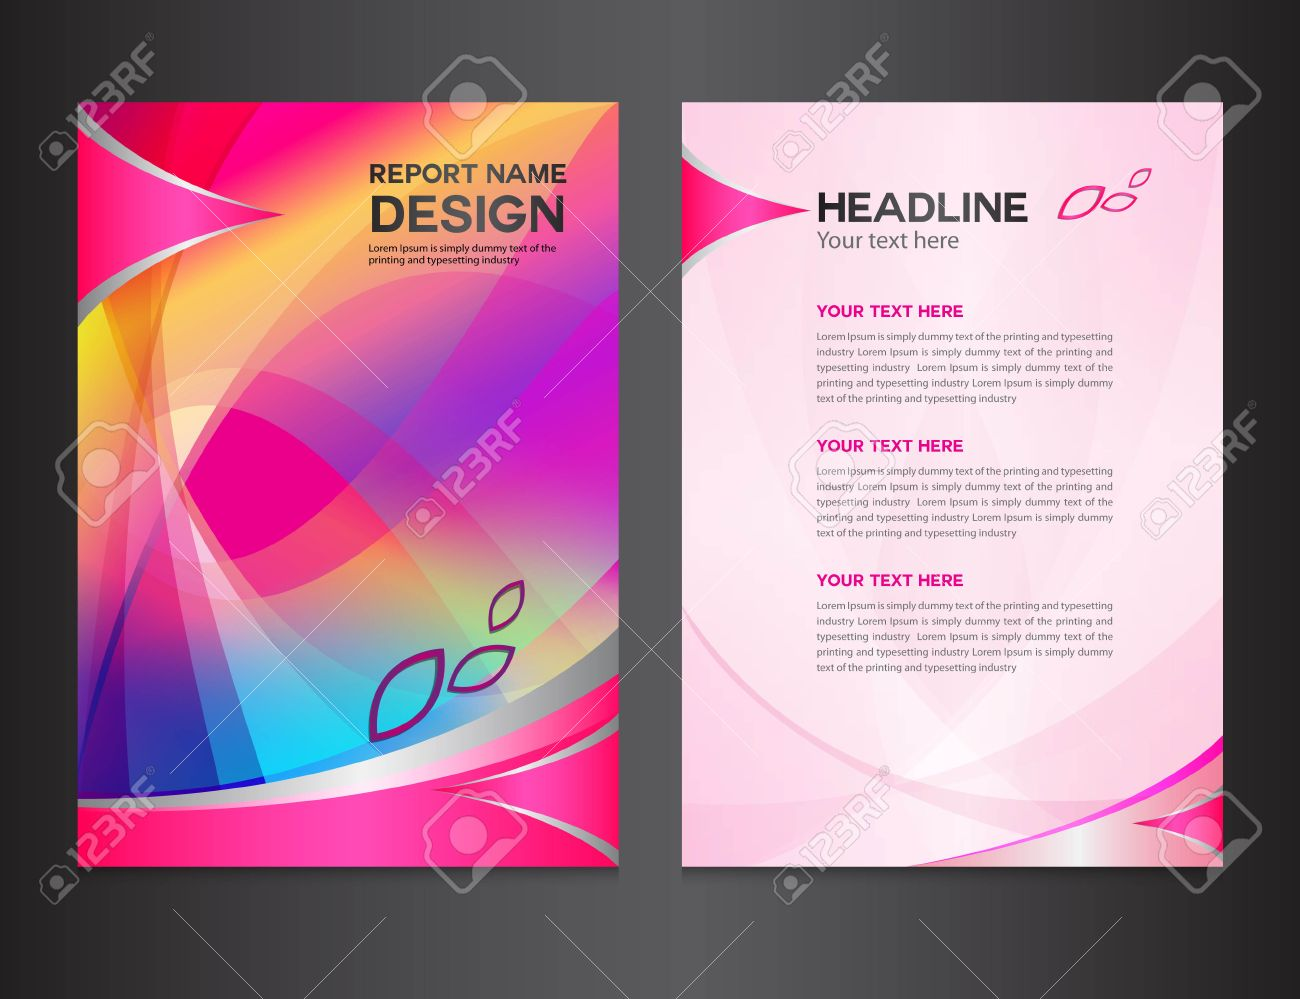 Pink Annual Report Vector Illustration cover Design  Brochure     pink Annual report Vector illustration cover design  brochure design   template design graphic